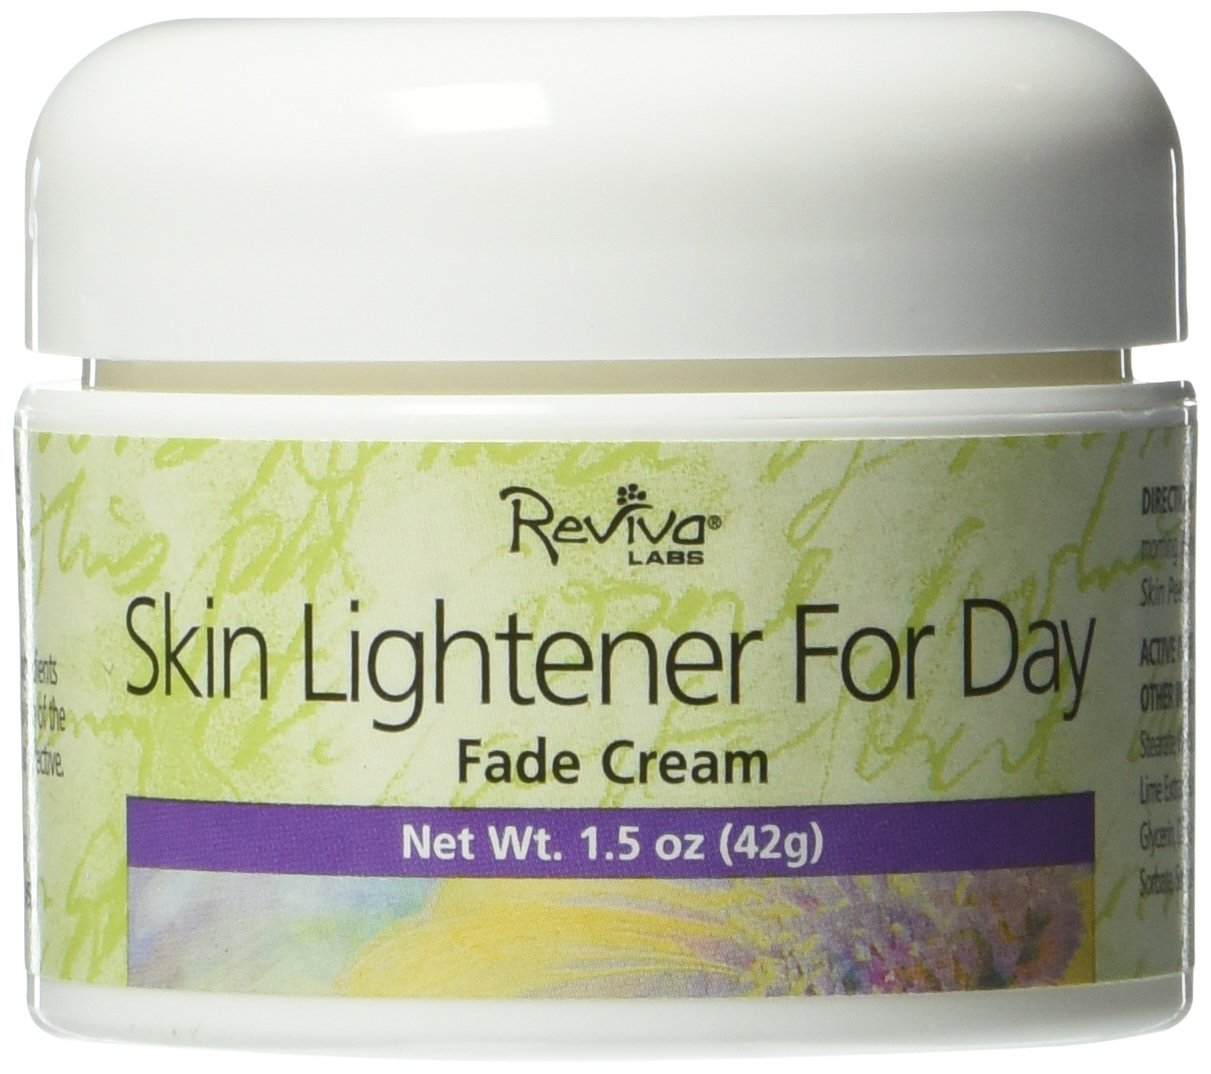 Reviva Labs Skin Lightener for Day Fade Cream, 1.5 Ounce